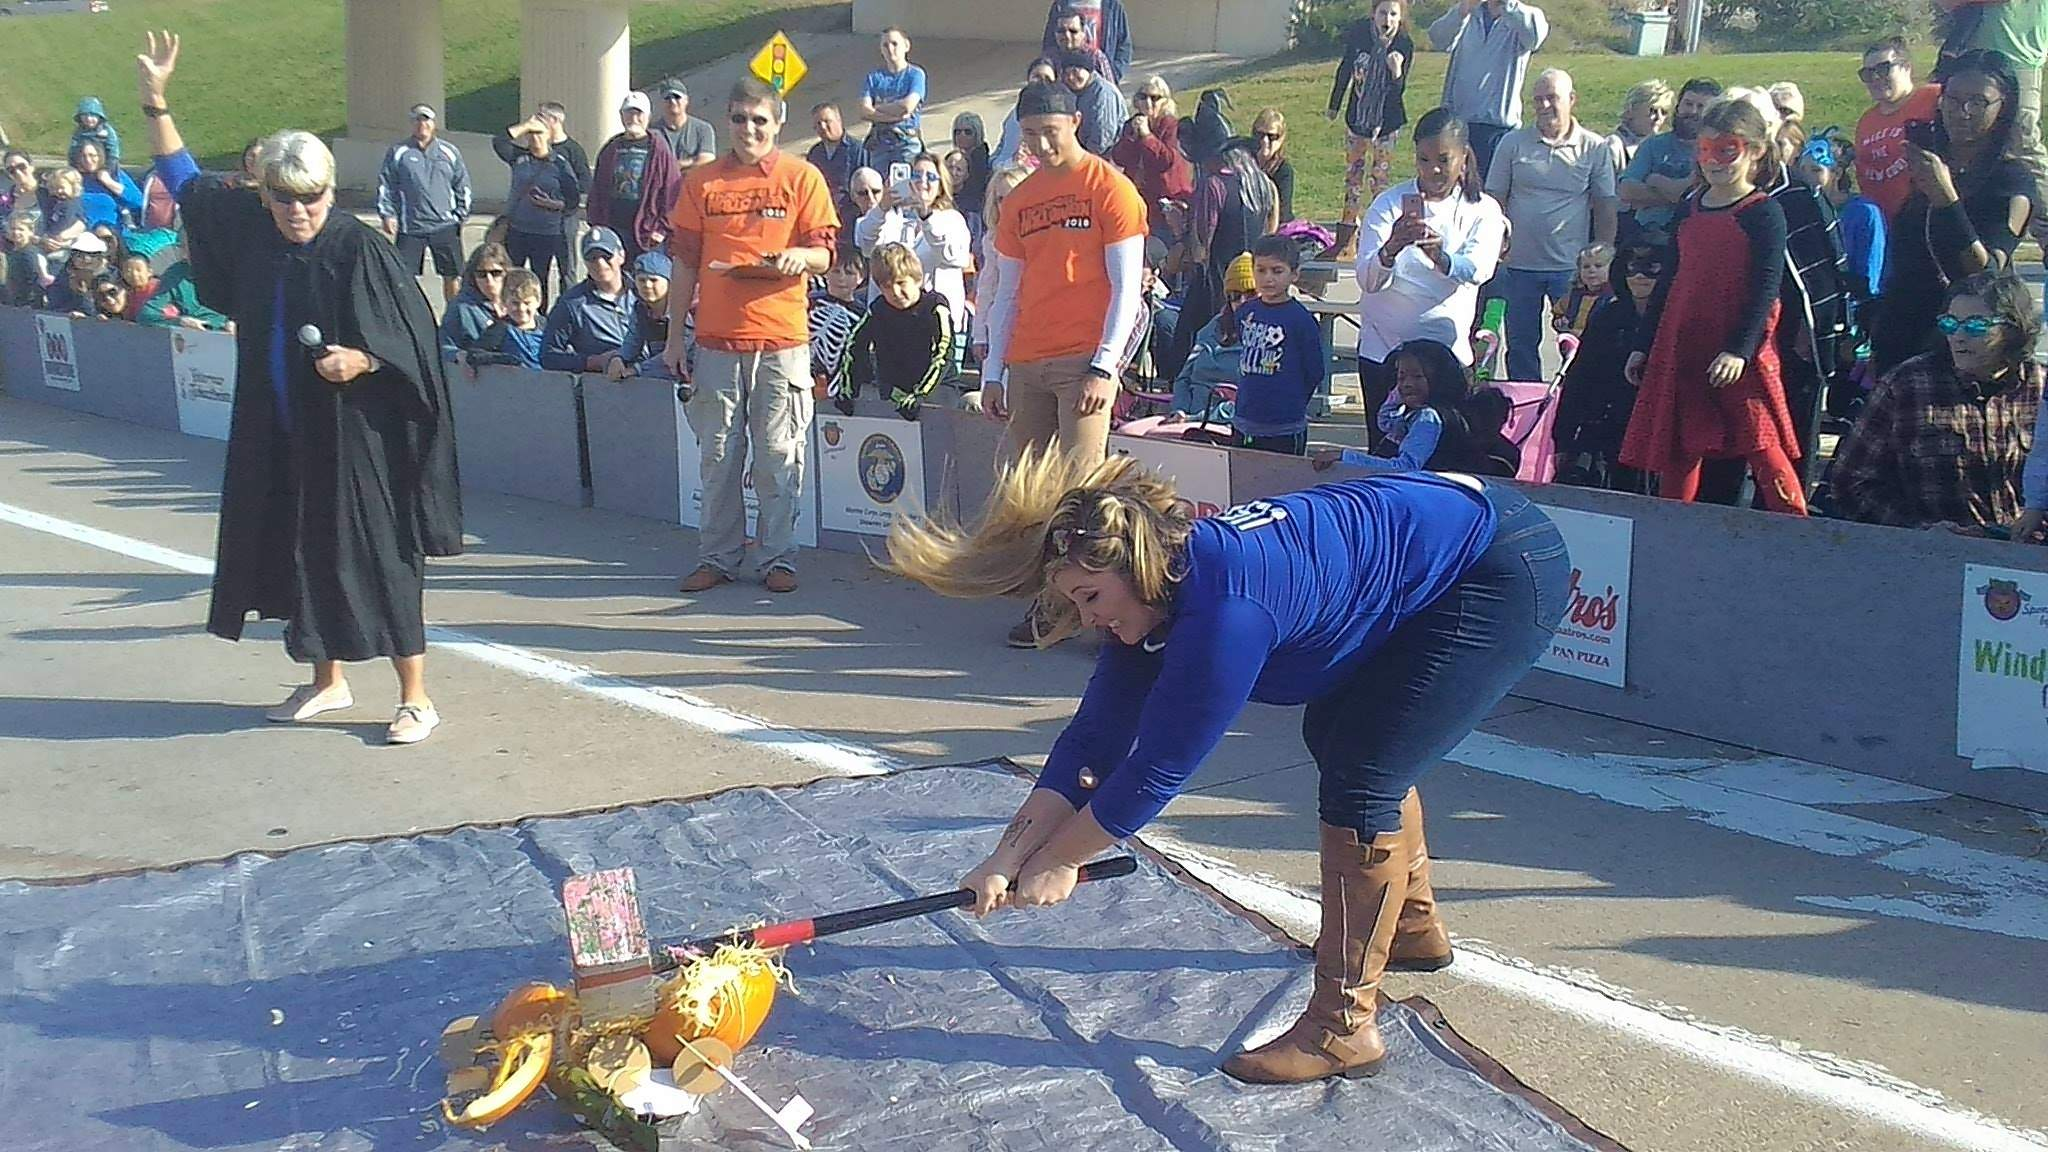 Past SIU and Olympic thrower DeAnna Price was the smasher of pumpkins at Saturday's races.